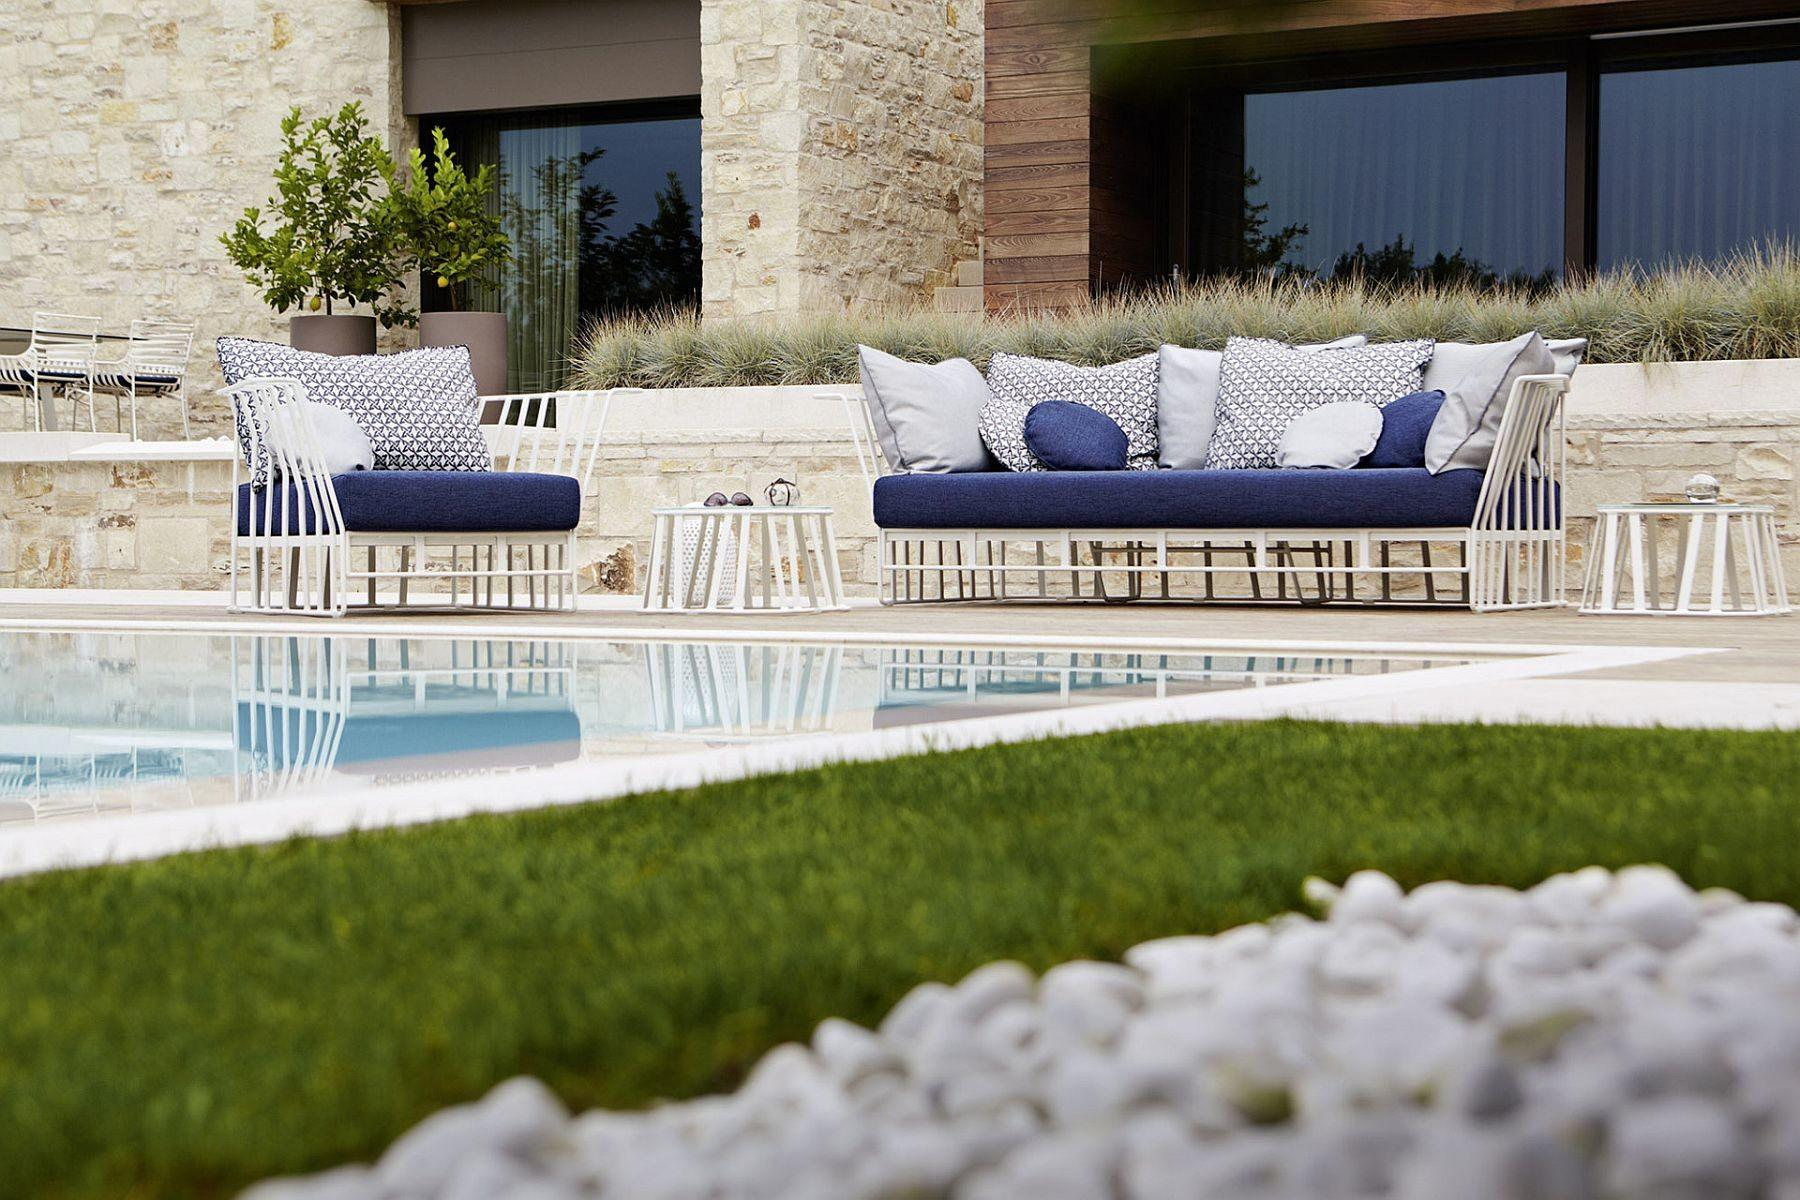 Breezy Outdoor Chairs Sofas Contemporary Geo